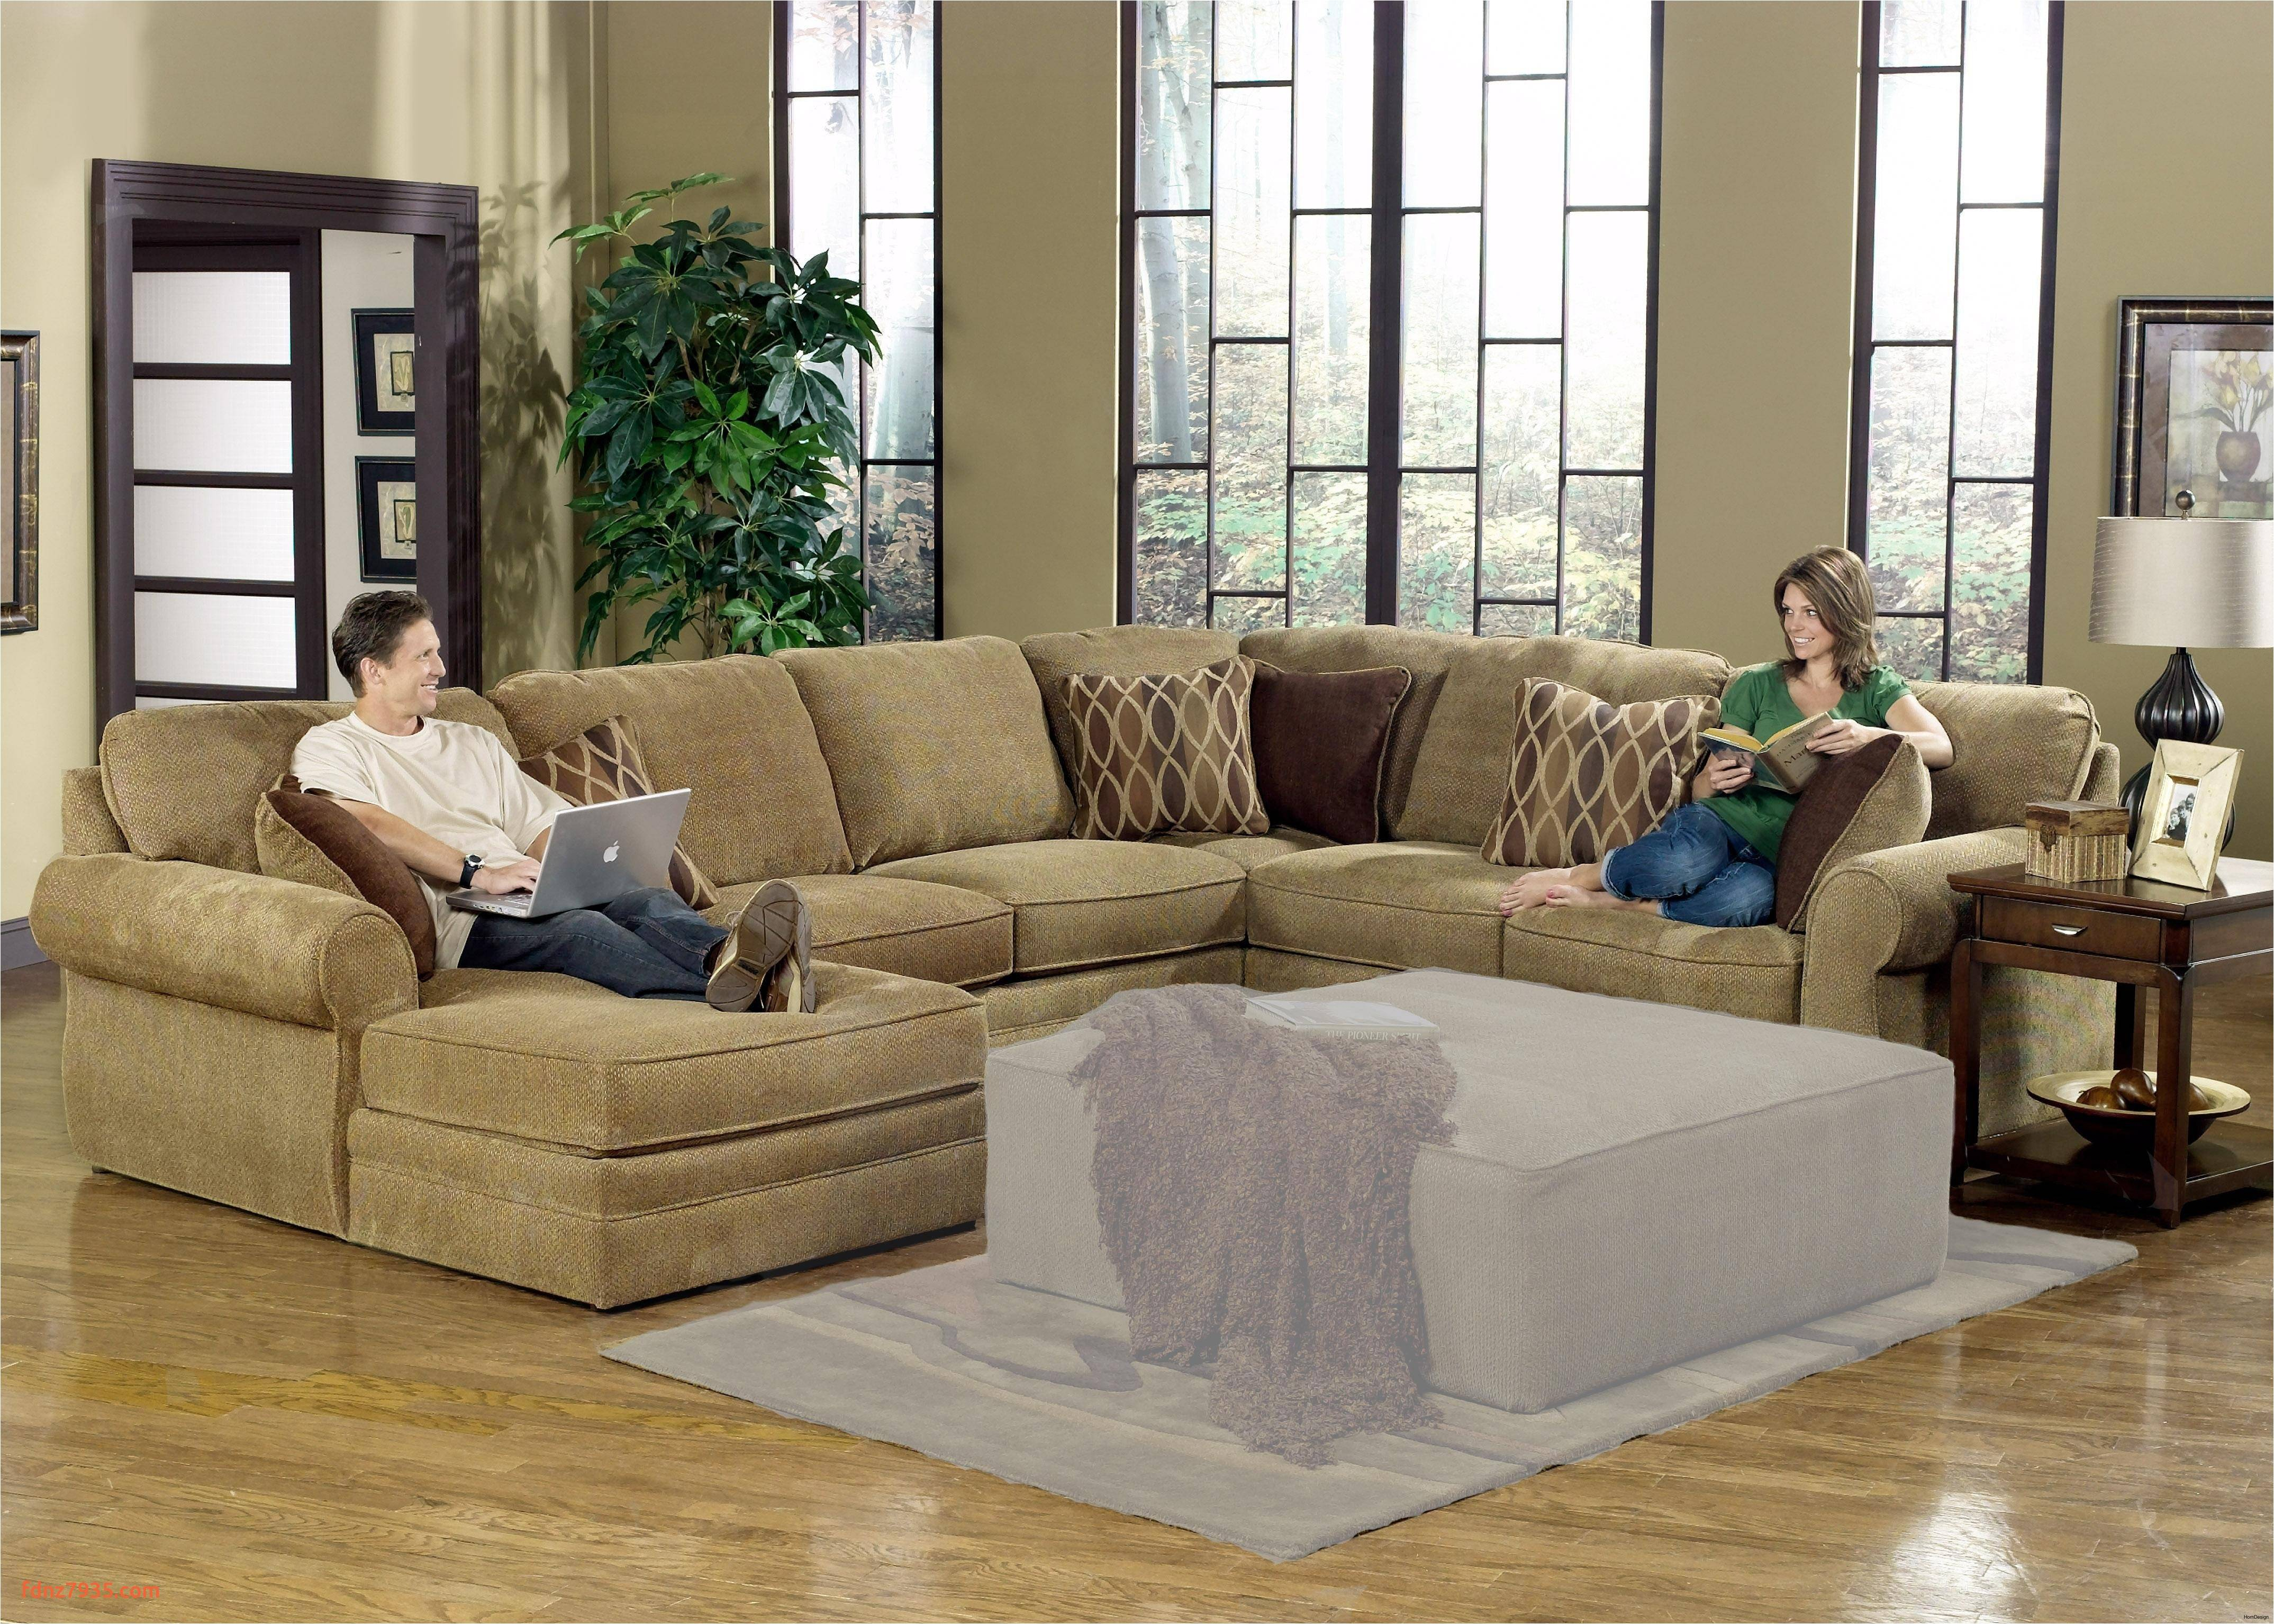 u shaped sectional sofa with recliners l shaped sectional sofa best u shaped sectionals home design of u shaped sectional sofa with recliners